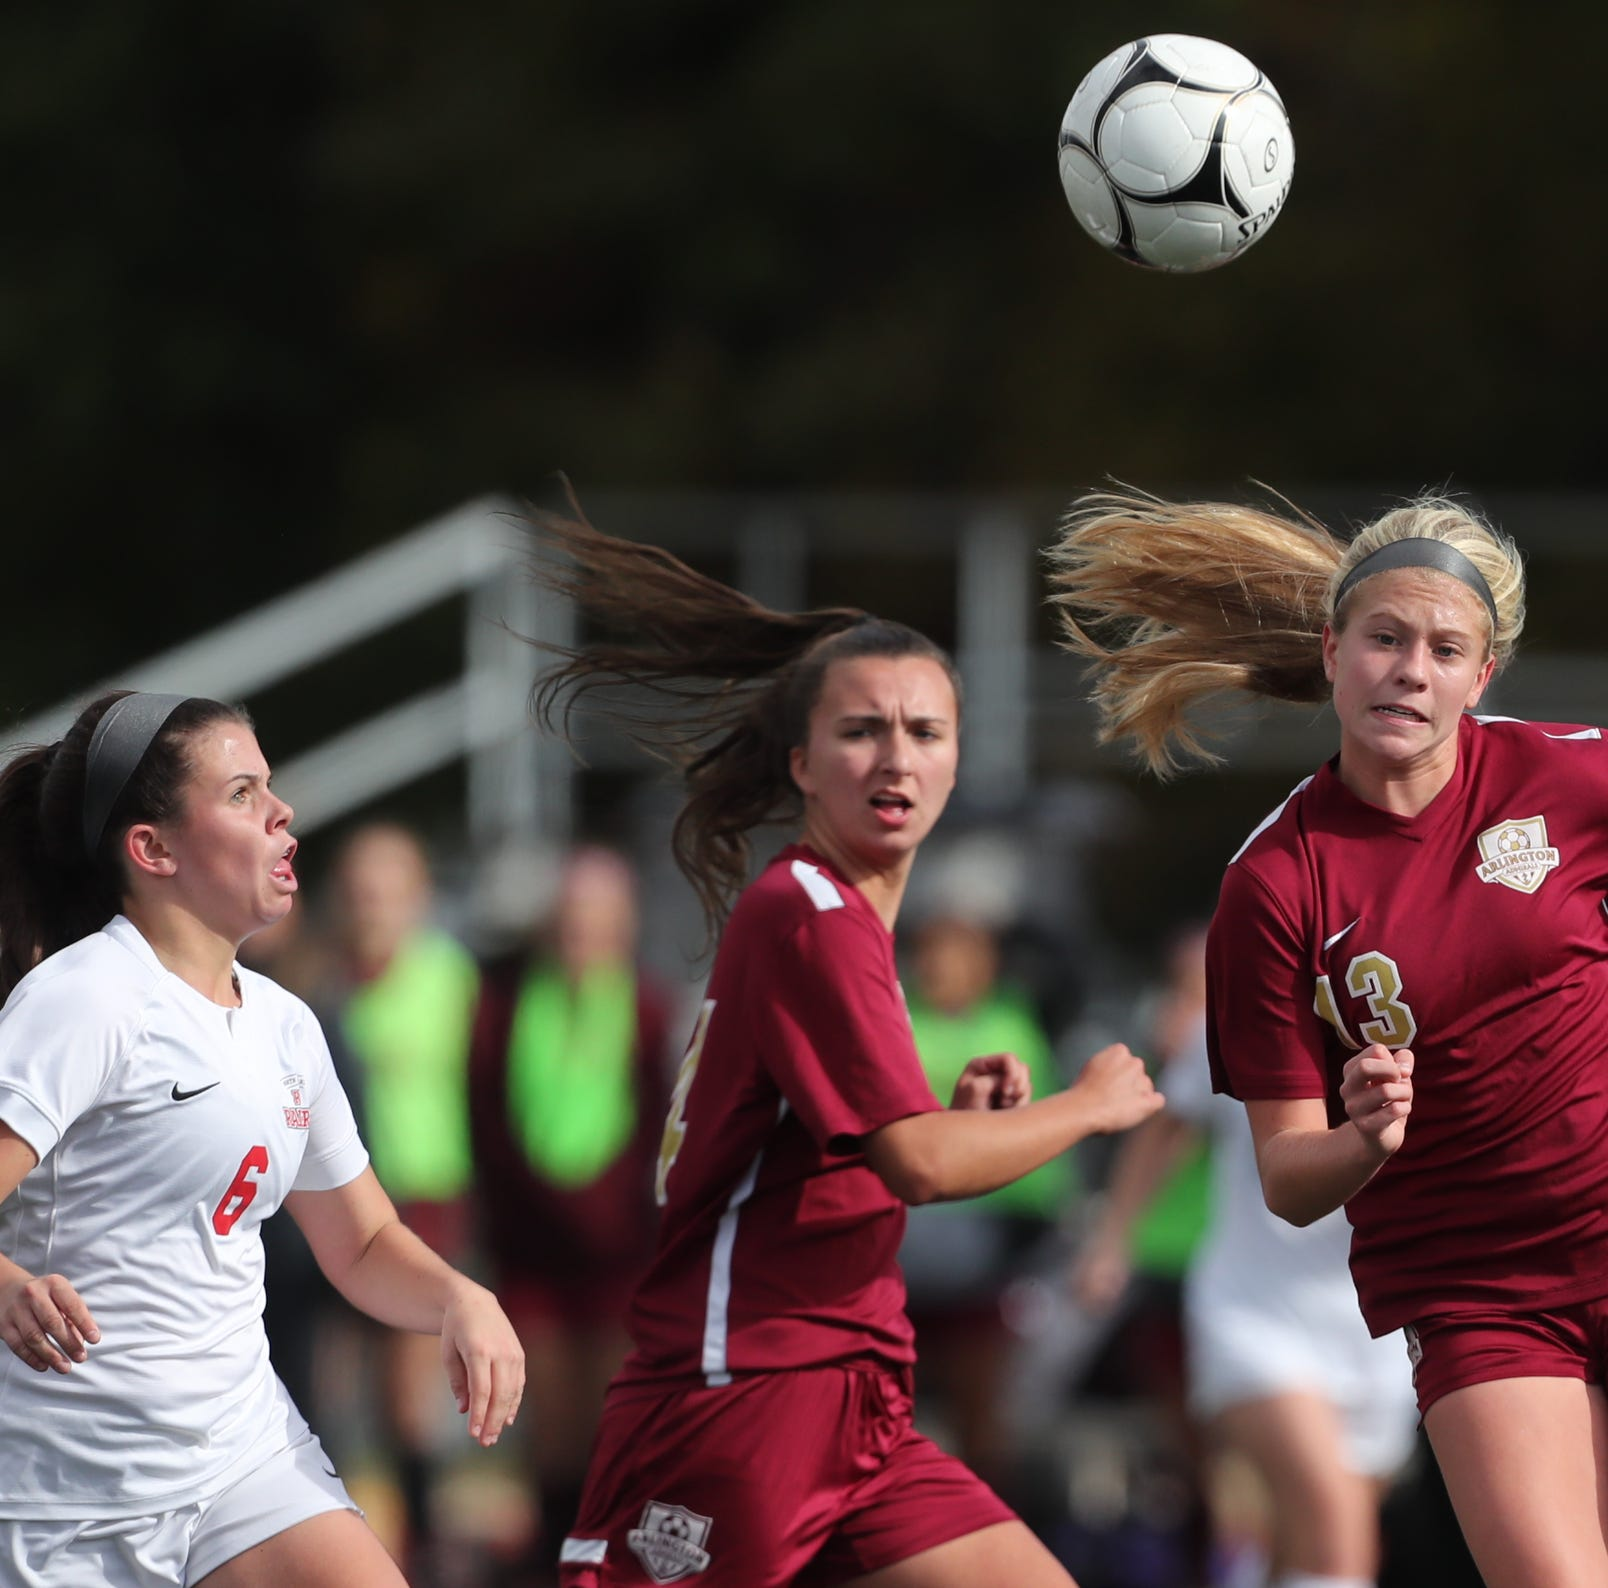 Girls soccer: Final power rankings for the 2018 season